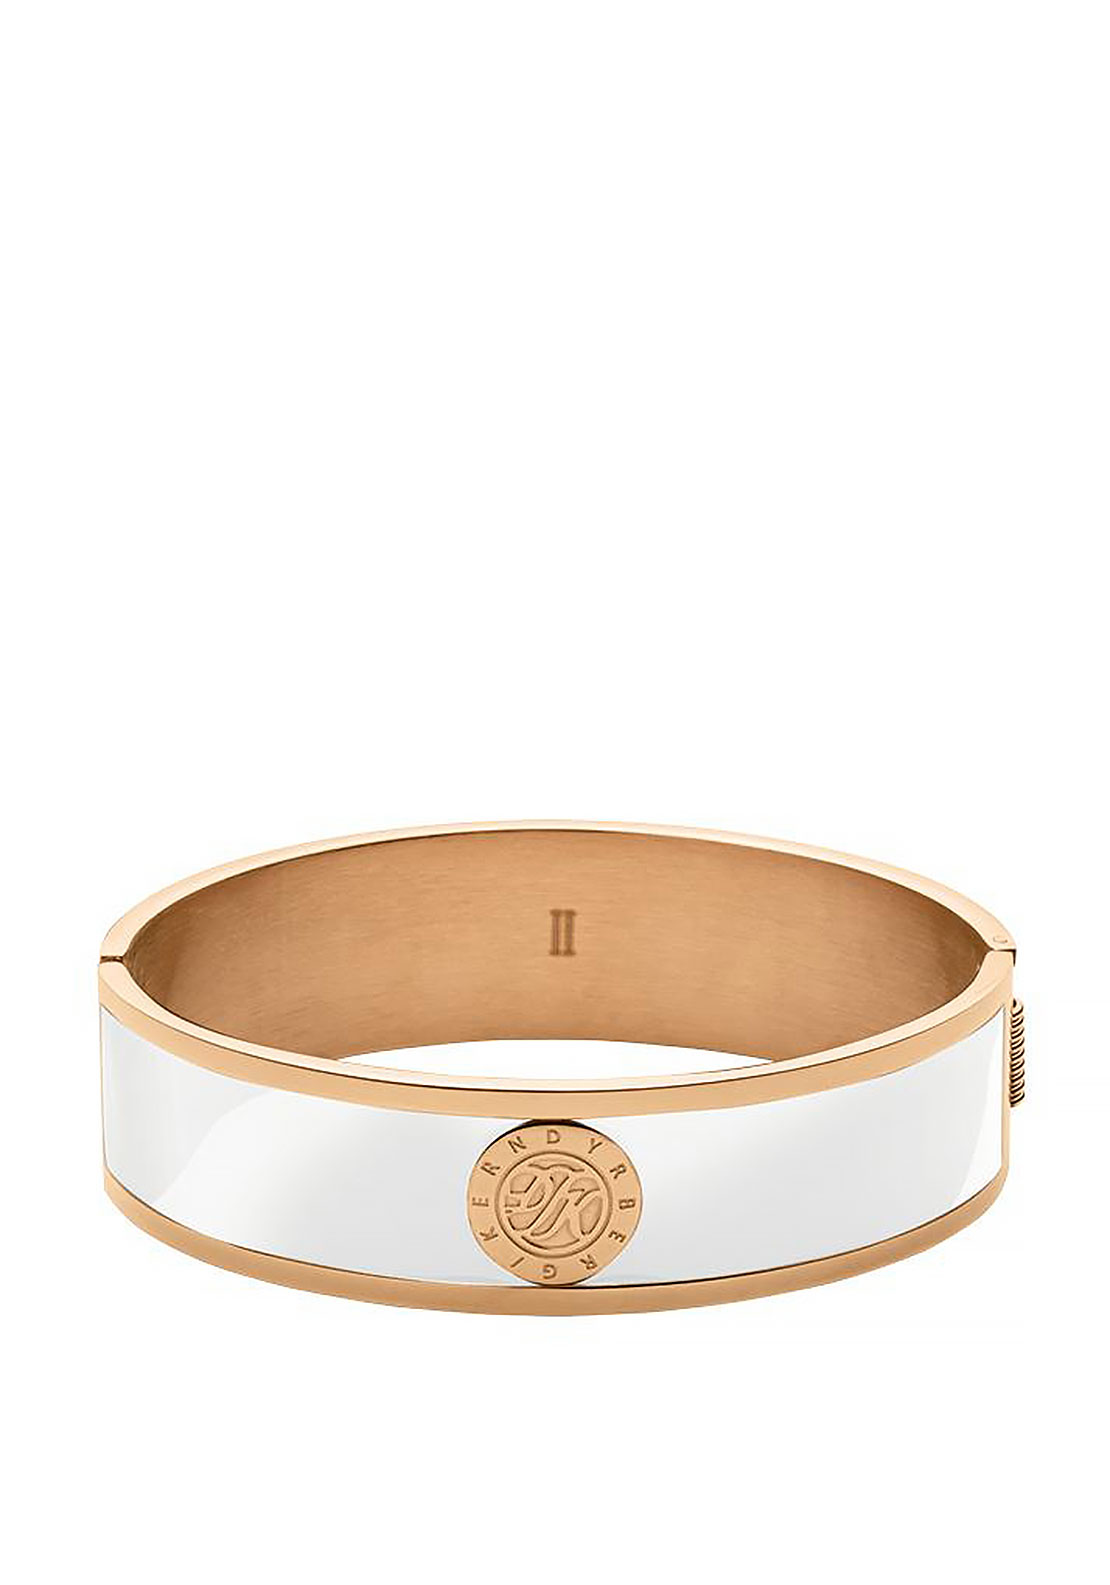 Dyrberg Kern Jovika Bangle, White & Rose Gold